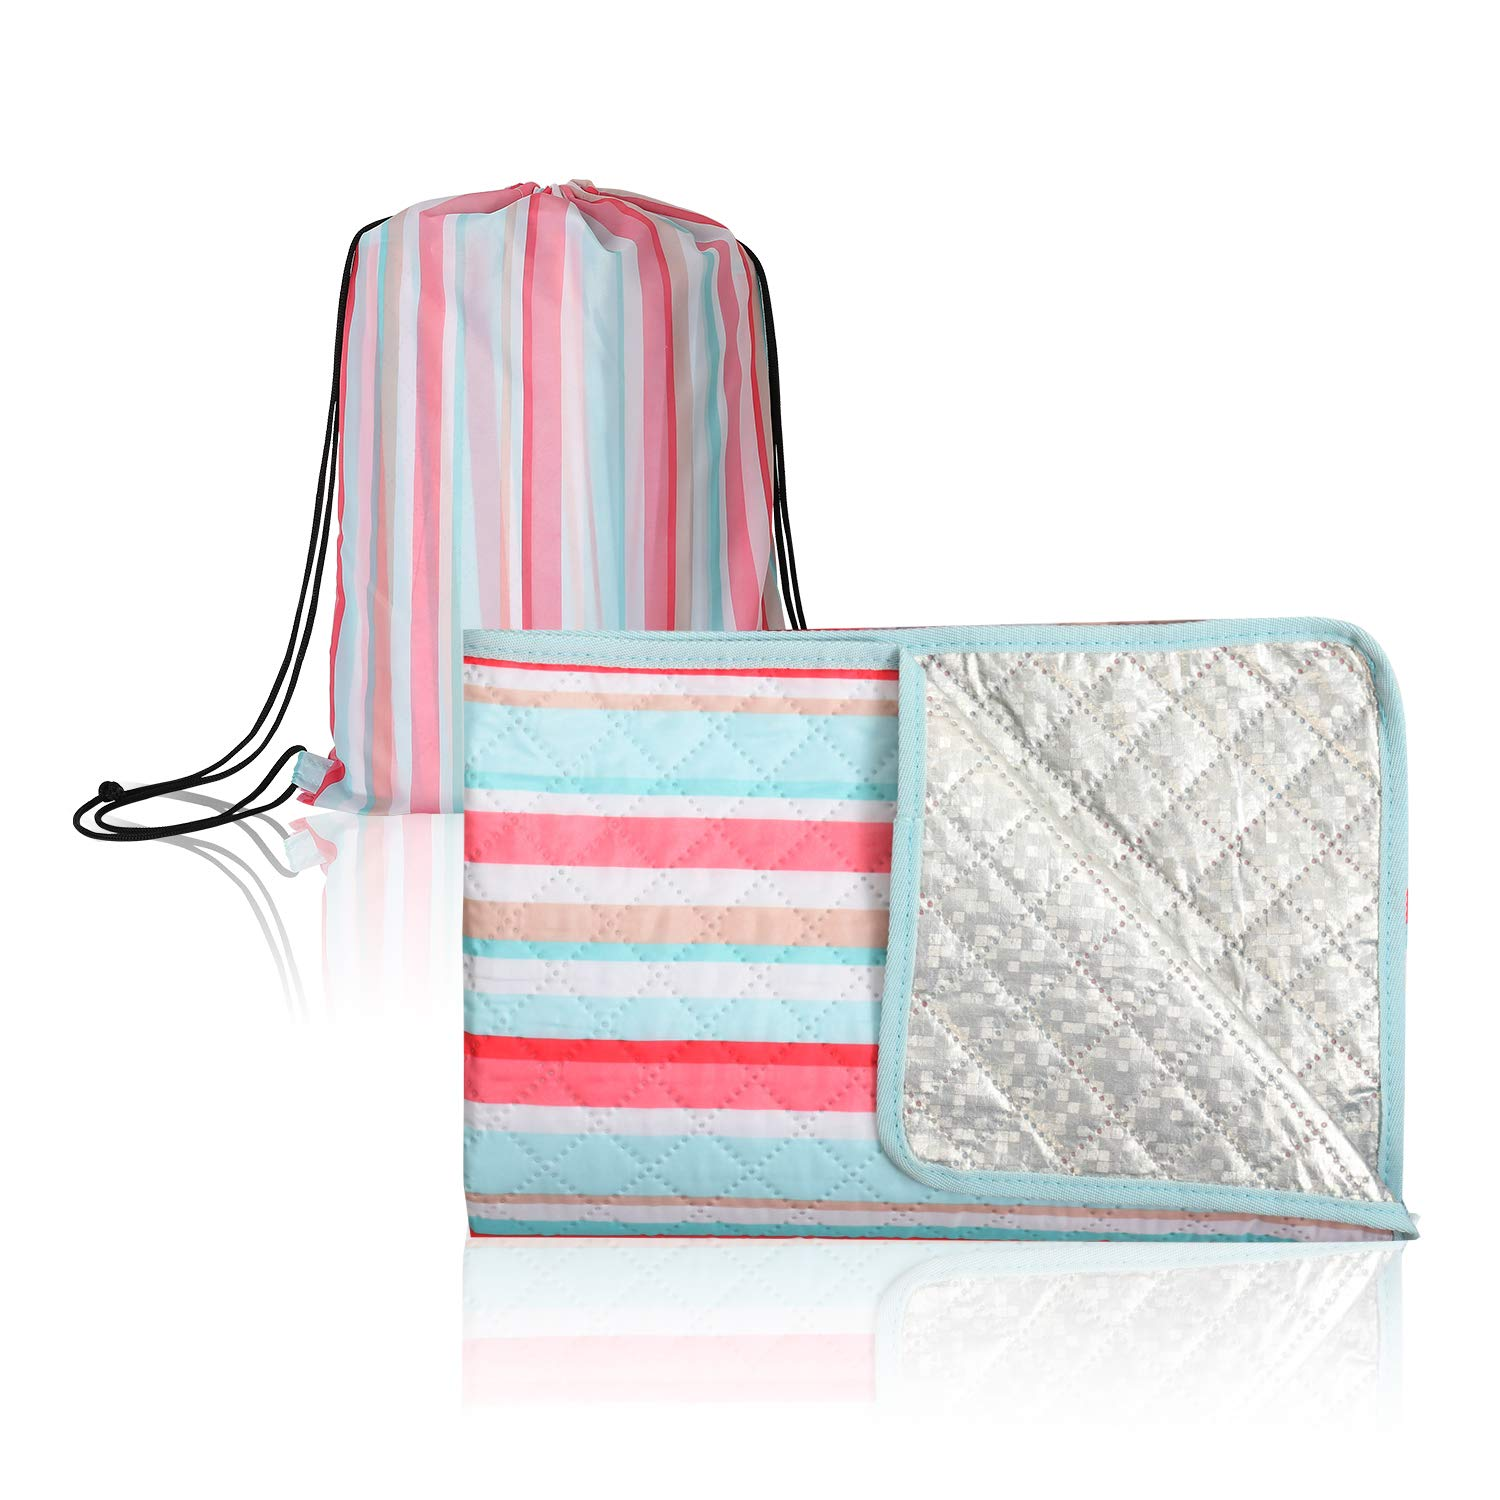 CALACH Extra Large Outdoor Picnic Blanket Waterproof Sand Proof Beach Camping Blanket Mat Indoor Family Blanket with Portable Carry Bag for Hiking Grass Travel Yoga Festival 57x79 Pink Green Stripe by CALACH